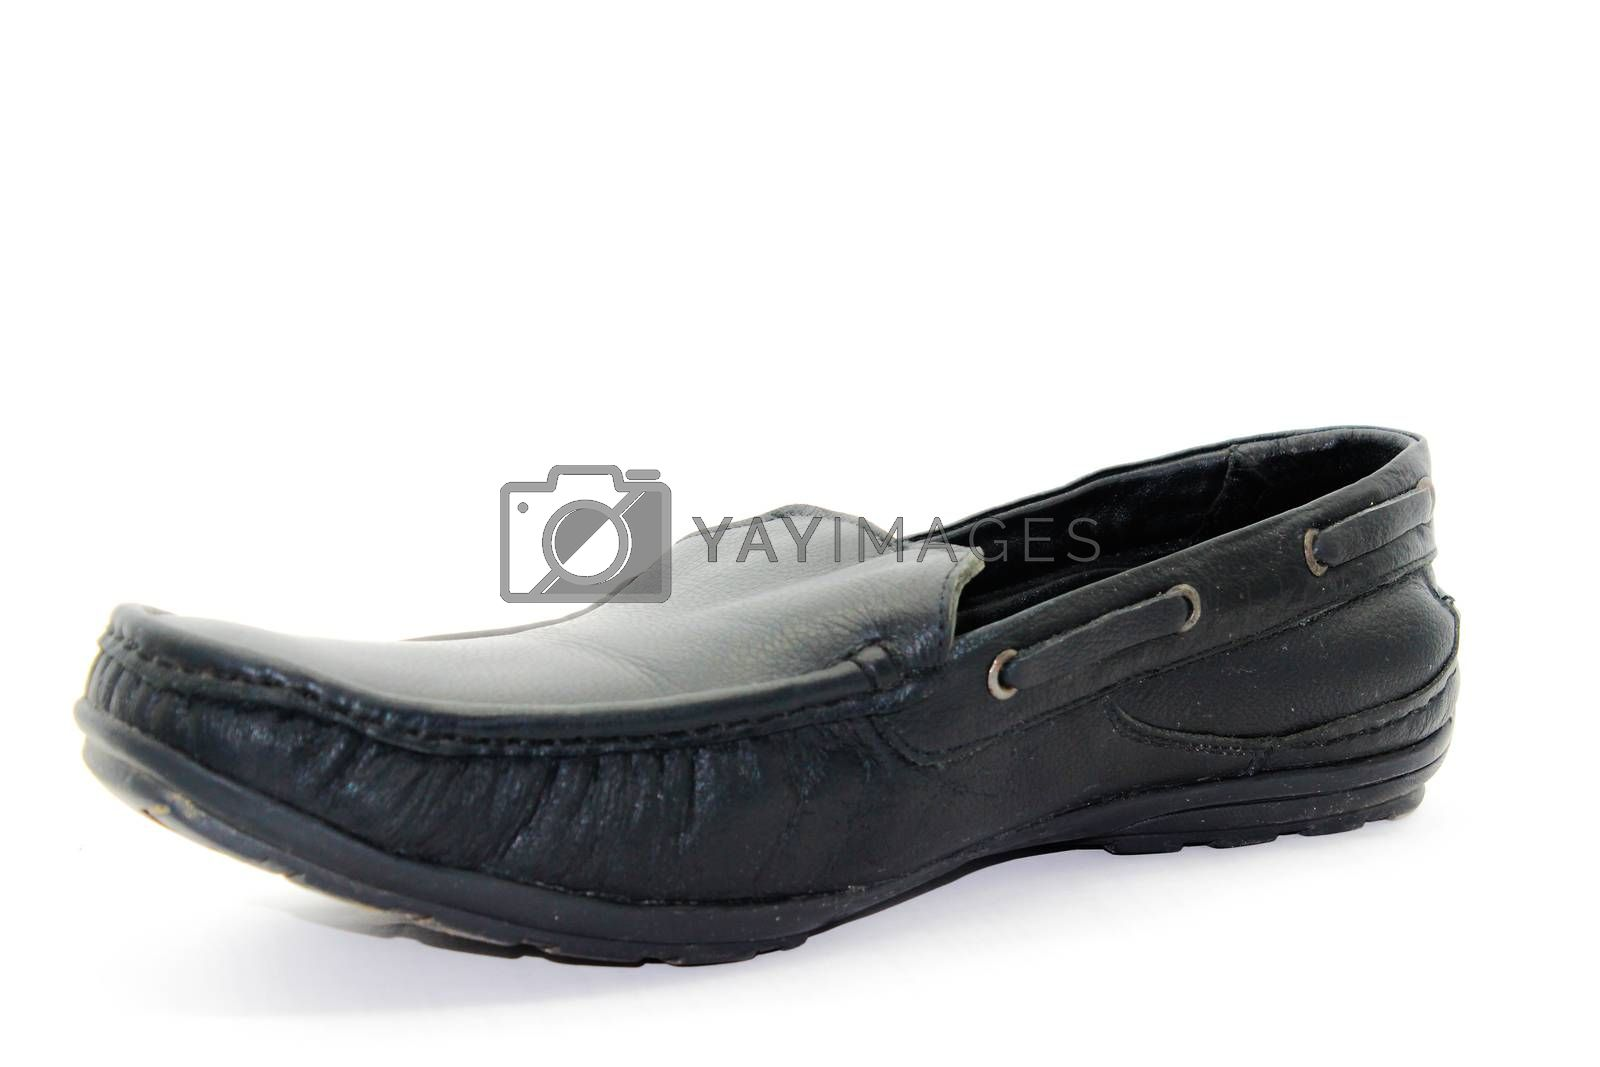 Black leather shose for men isolated on white background with selective focus